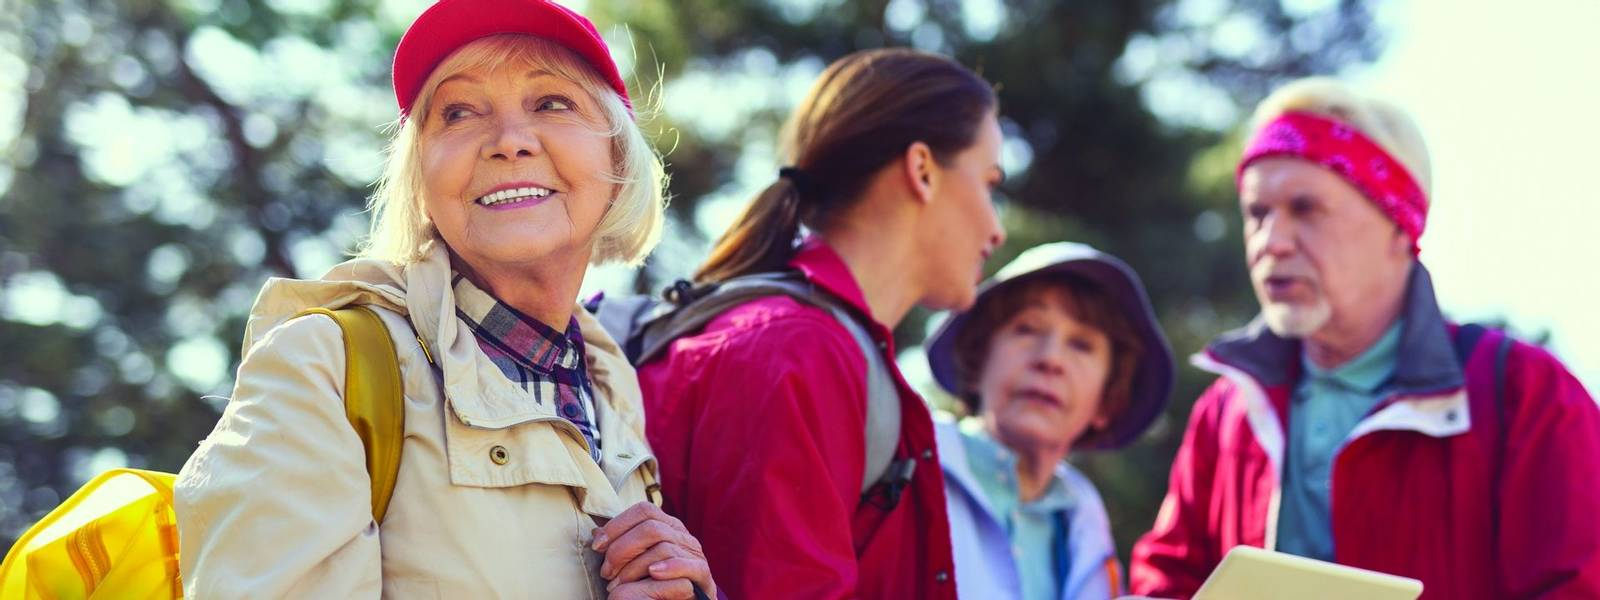 Nice spring day. Cheerful aged woman smiling while other hikers talking in the background